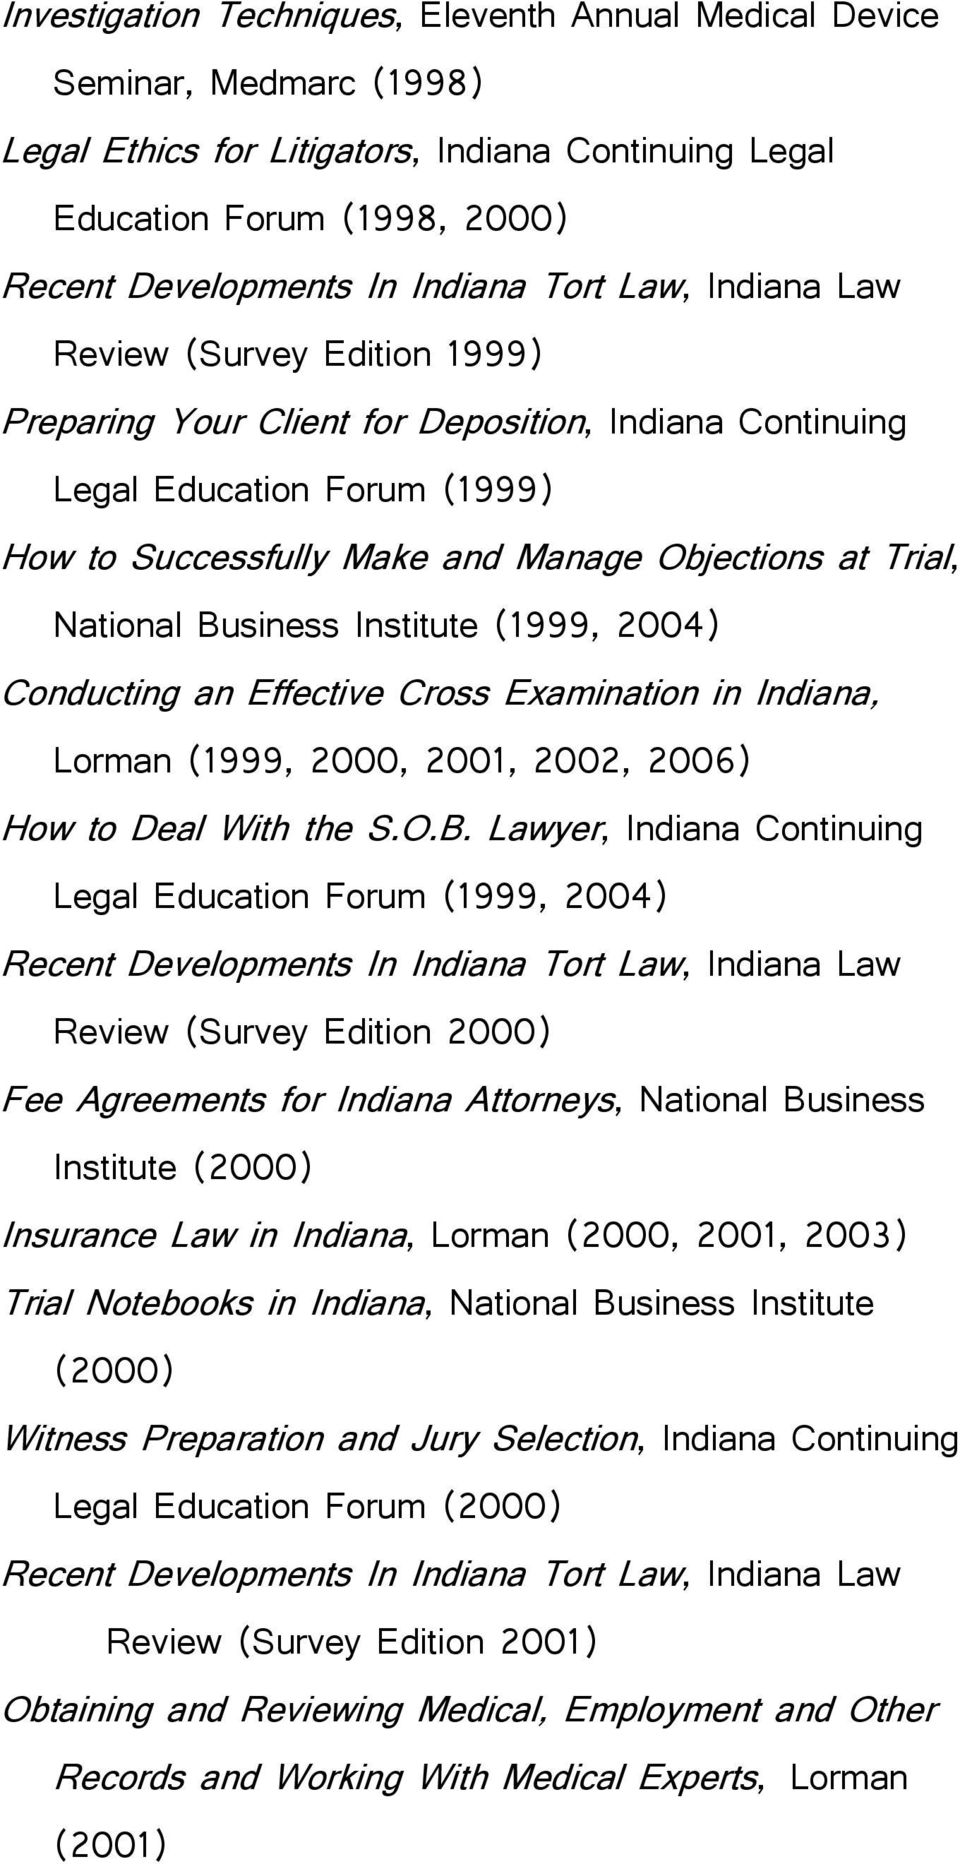 Business Institute (1999, 2004) Conducting an Effective Cross Examination in Indiana, Lorman (1999, 2000, 2001, 2002, 2006) How to Deal With the S.O.B. Lawyer, Indiana Continuing Legal Education